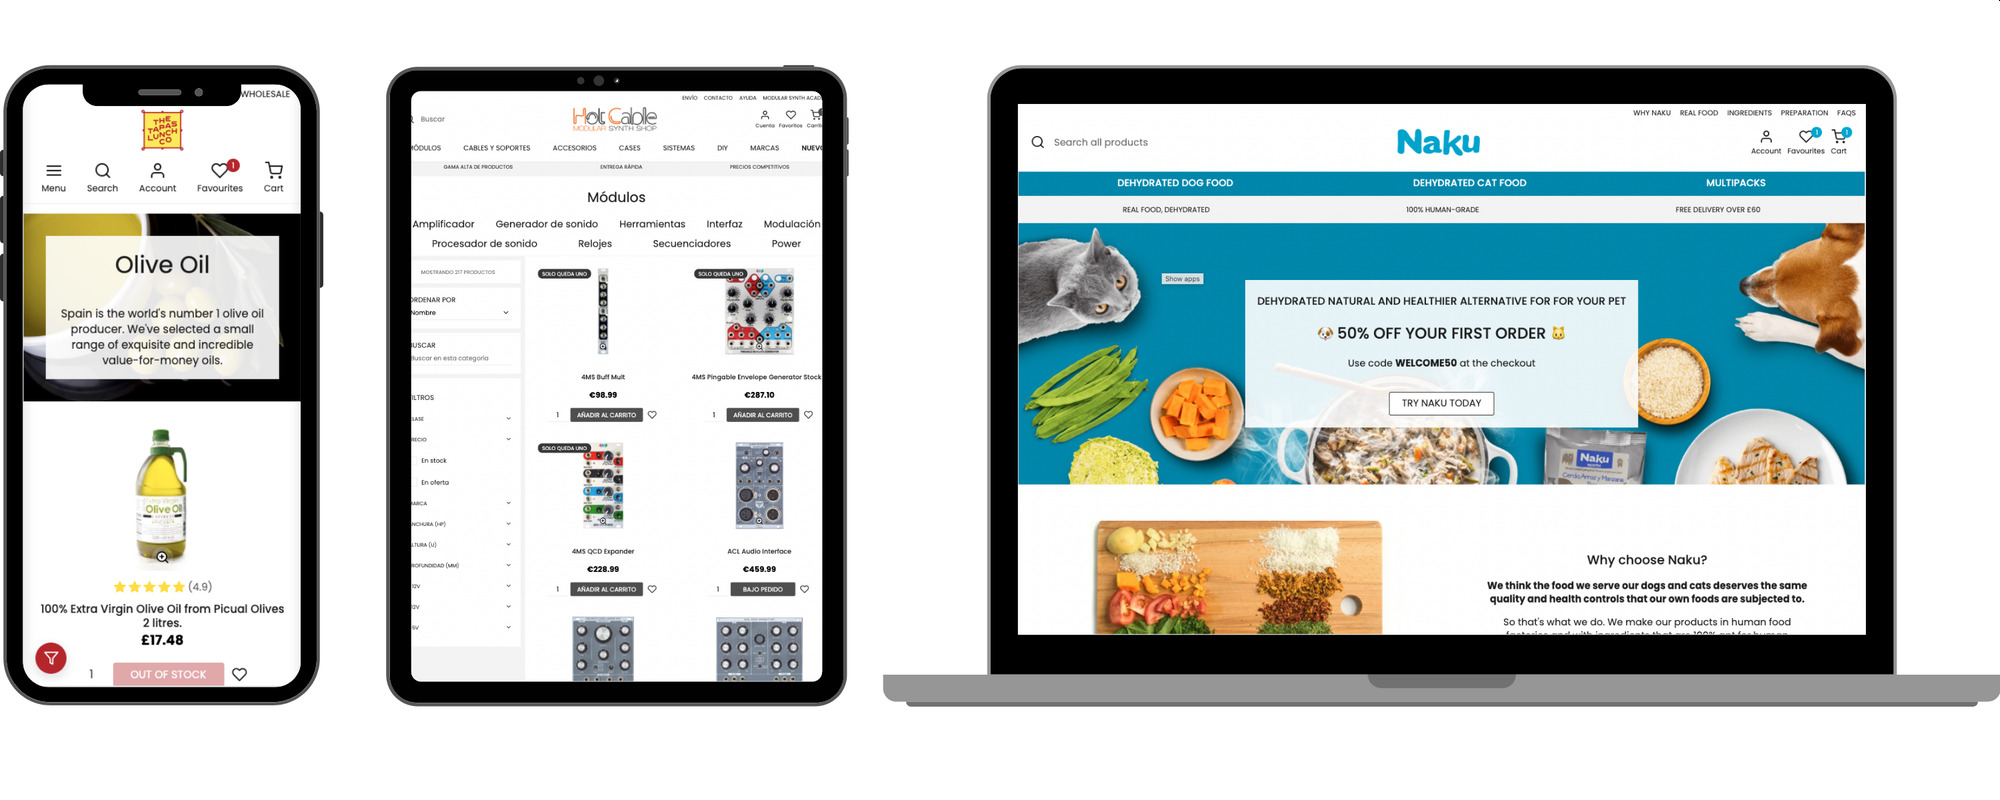 Pakk's ecommerce software running on different devices.